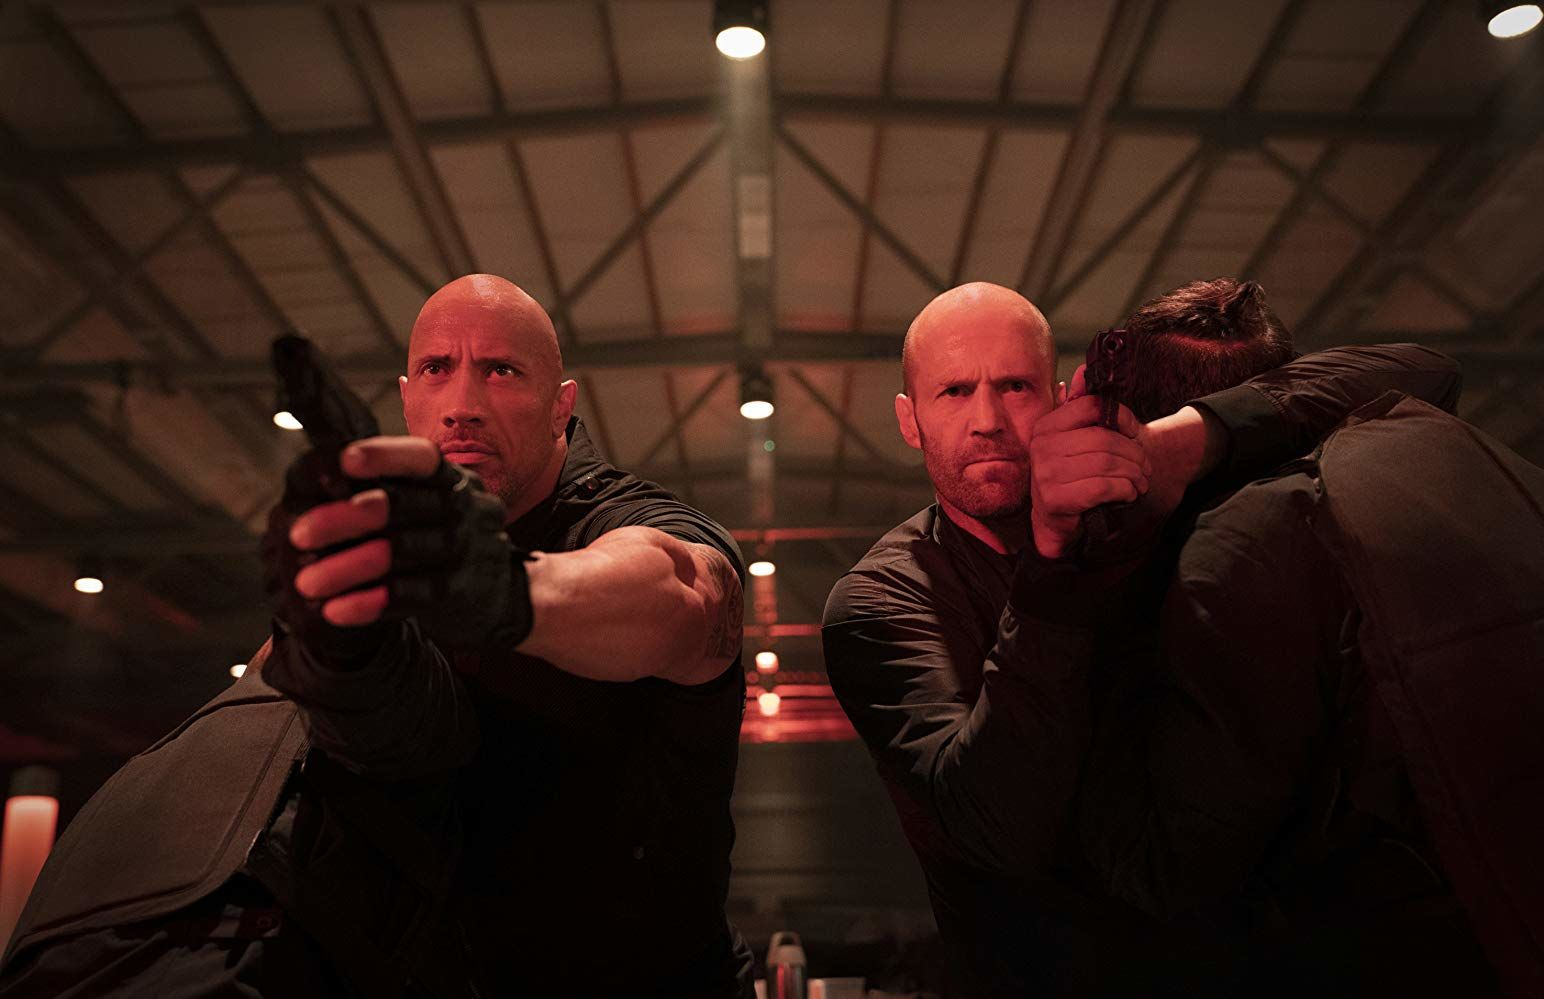 Box office: Hobbs & Shaw slides to second place in third weekend with $14.1 million